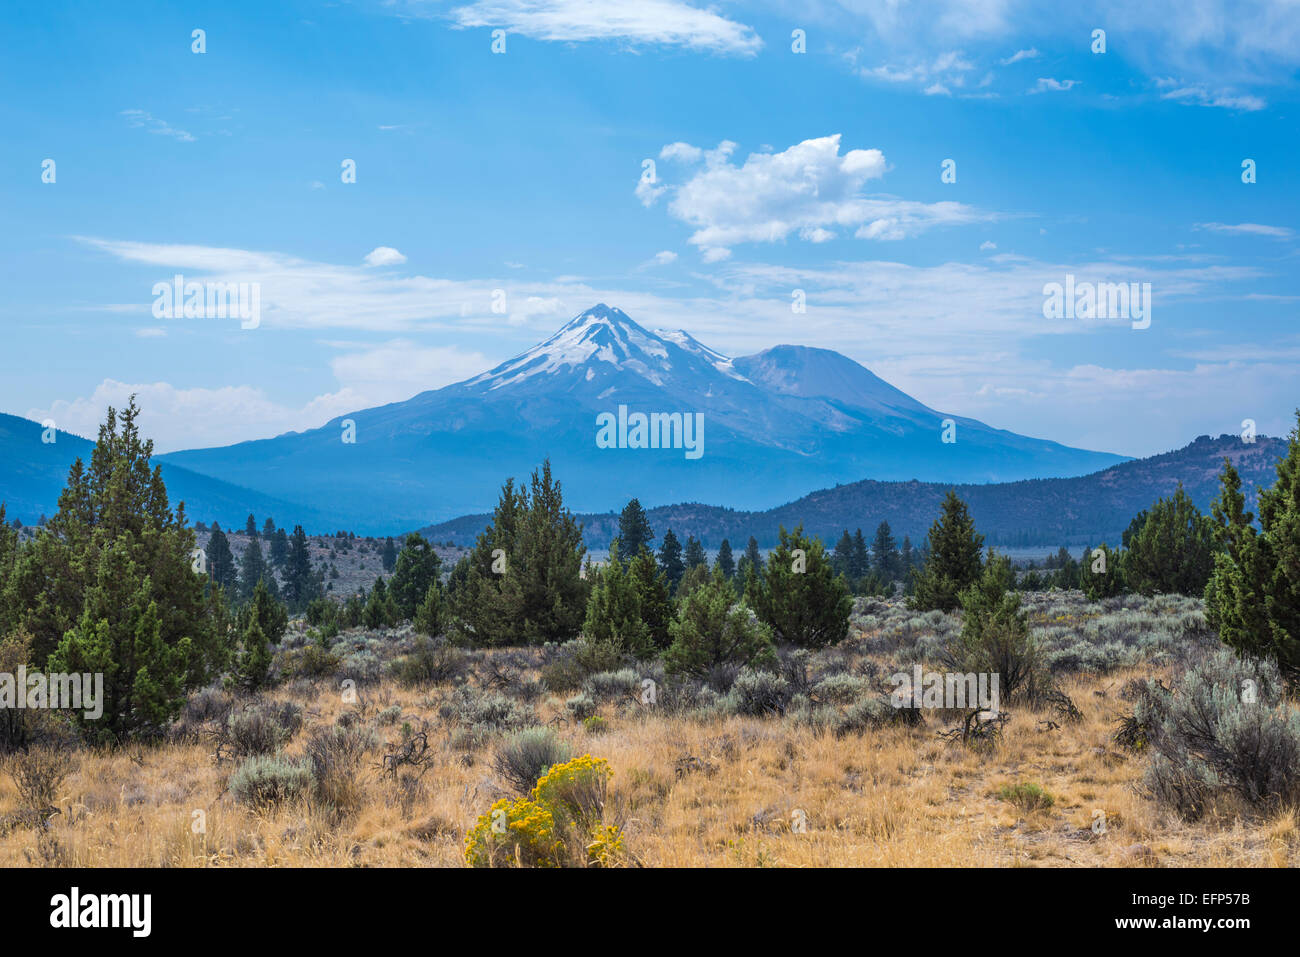 View of Mount Shasta. Siskiyou County, California, United States. - Stock Image